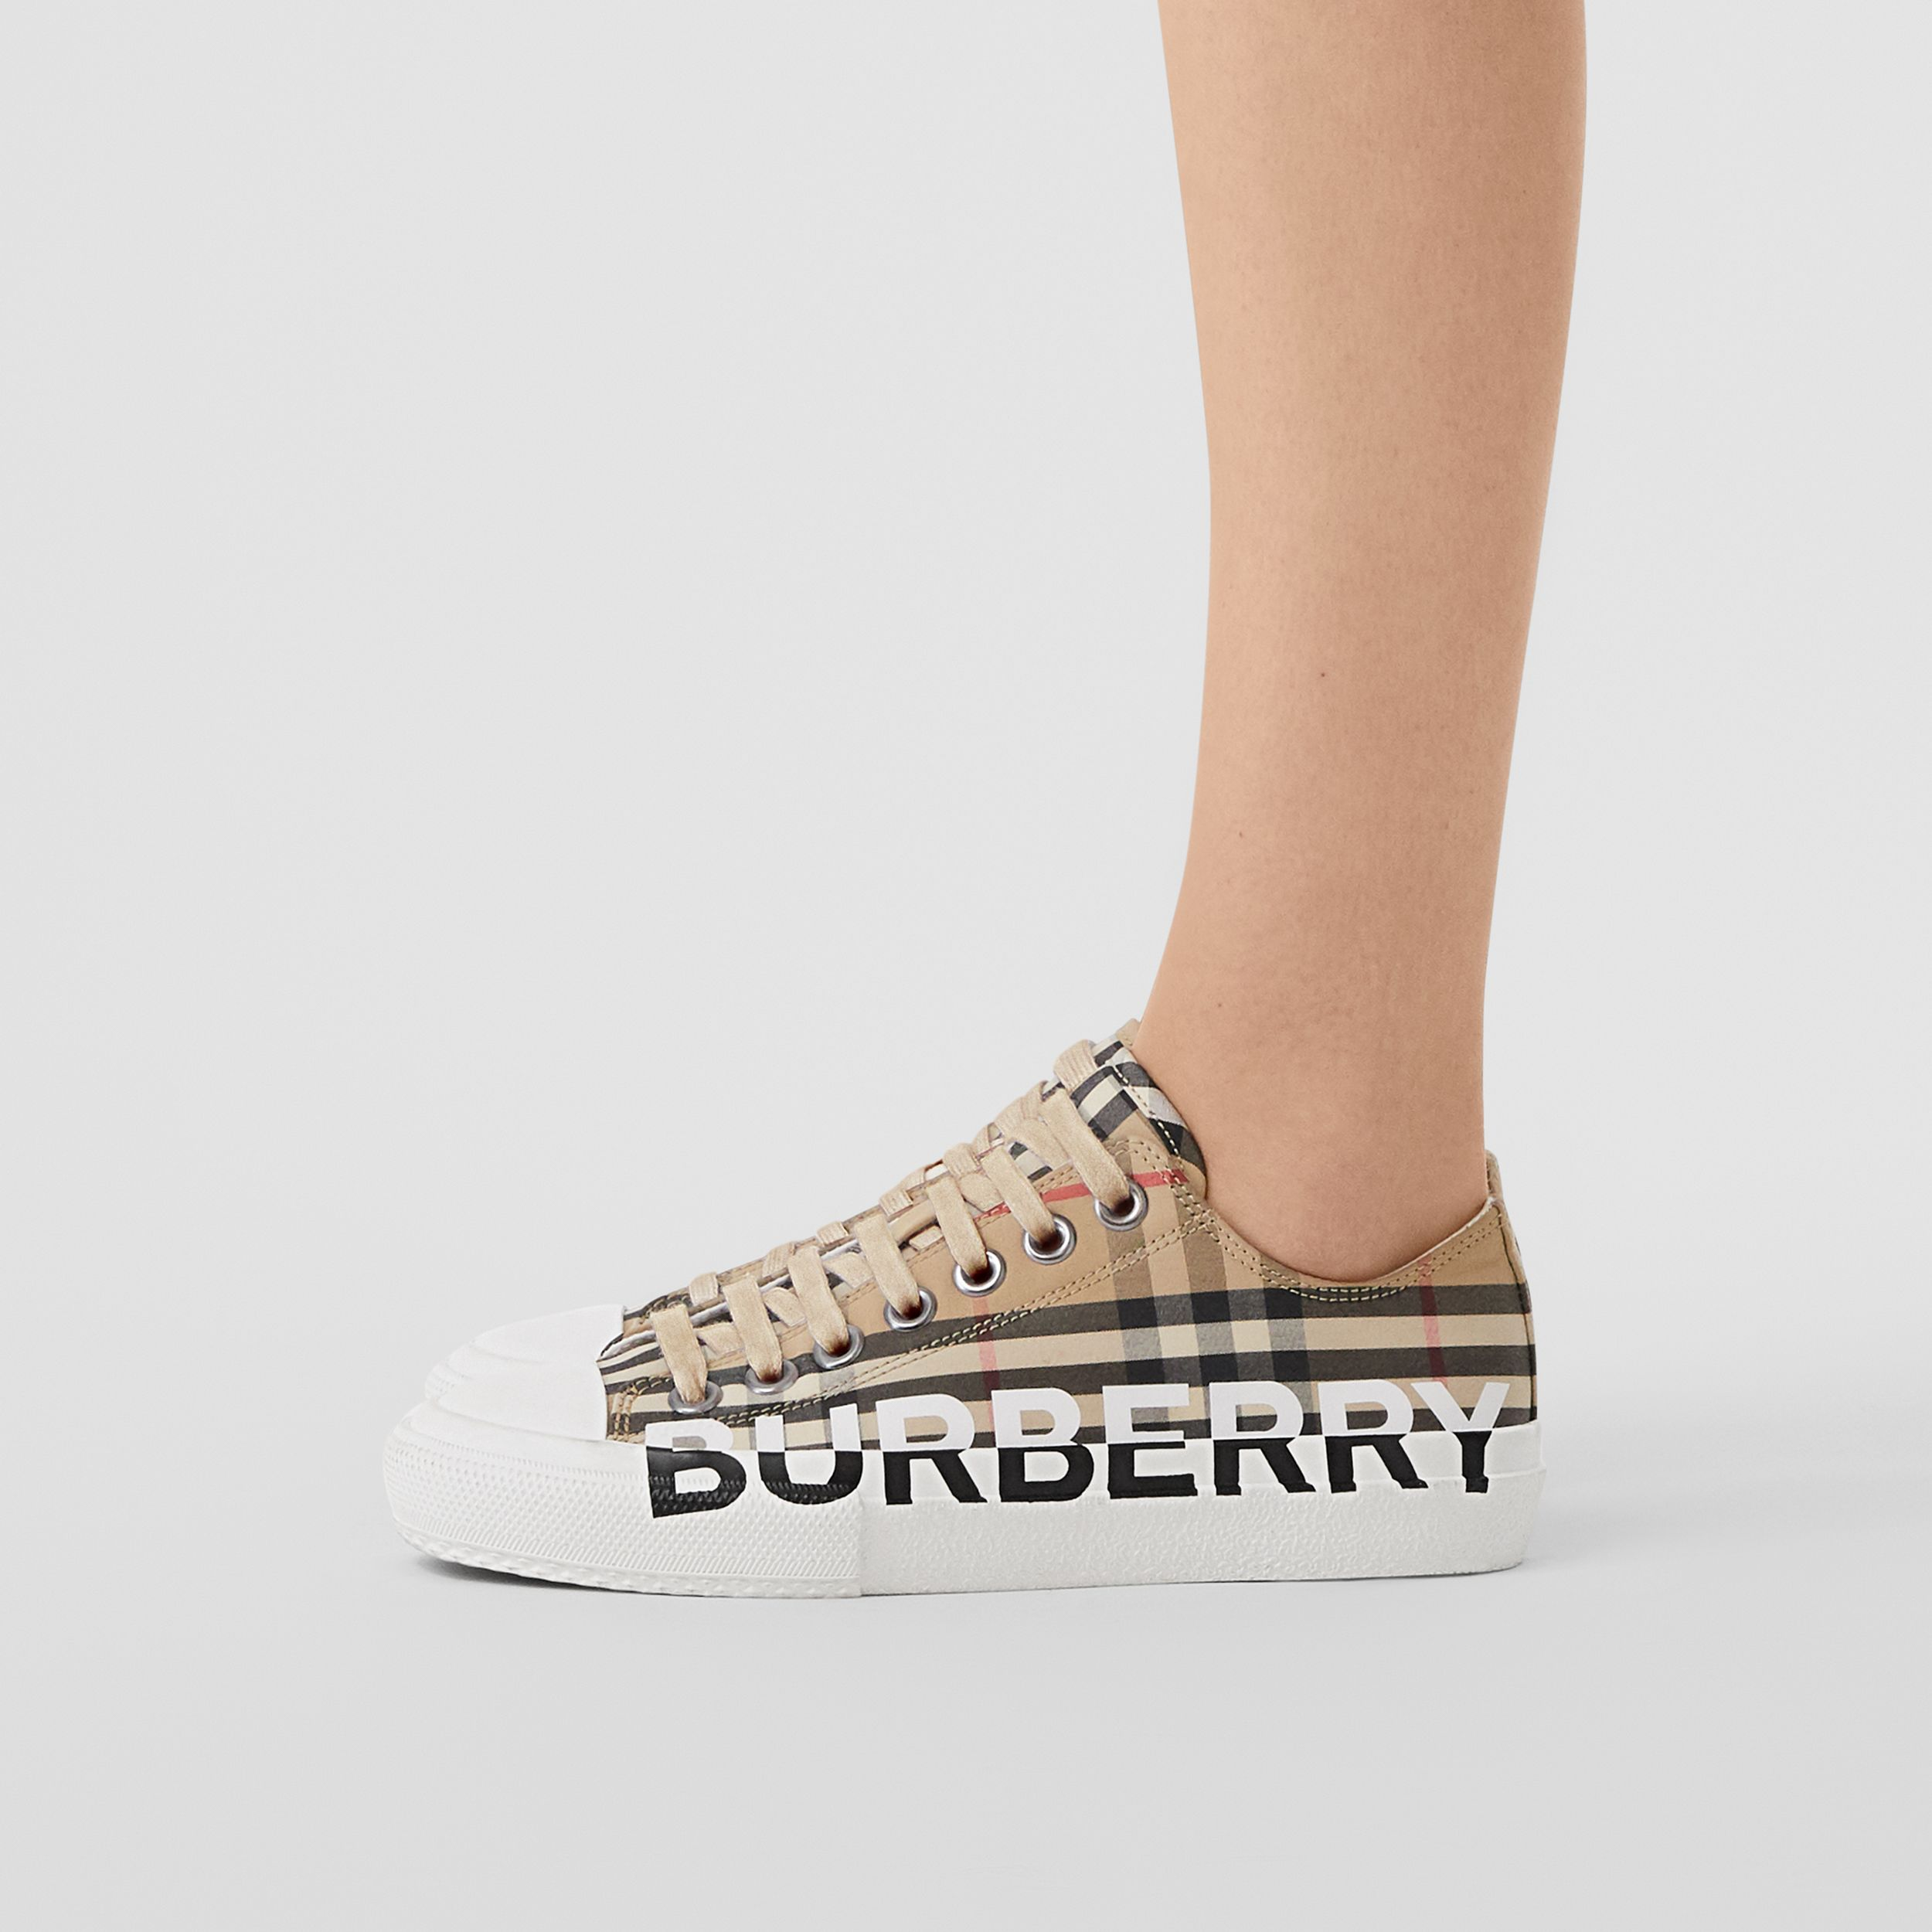 Logo Print Vintage Check Cotton Sneakers in Archive Beige - Women | Burberry Canada - 3